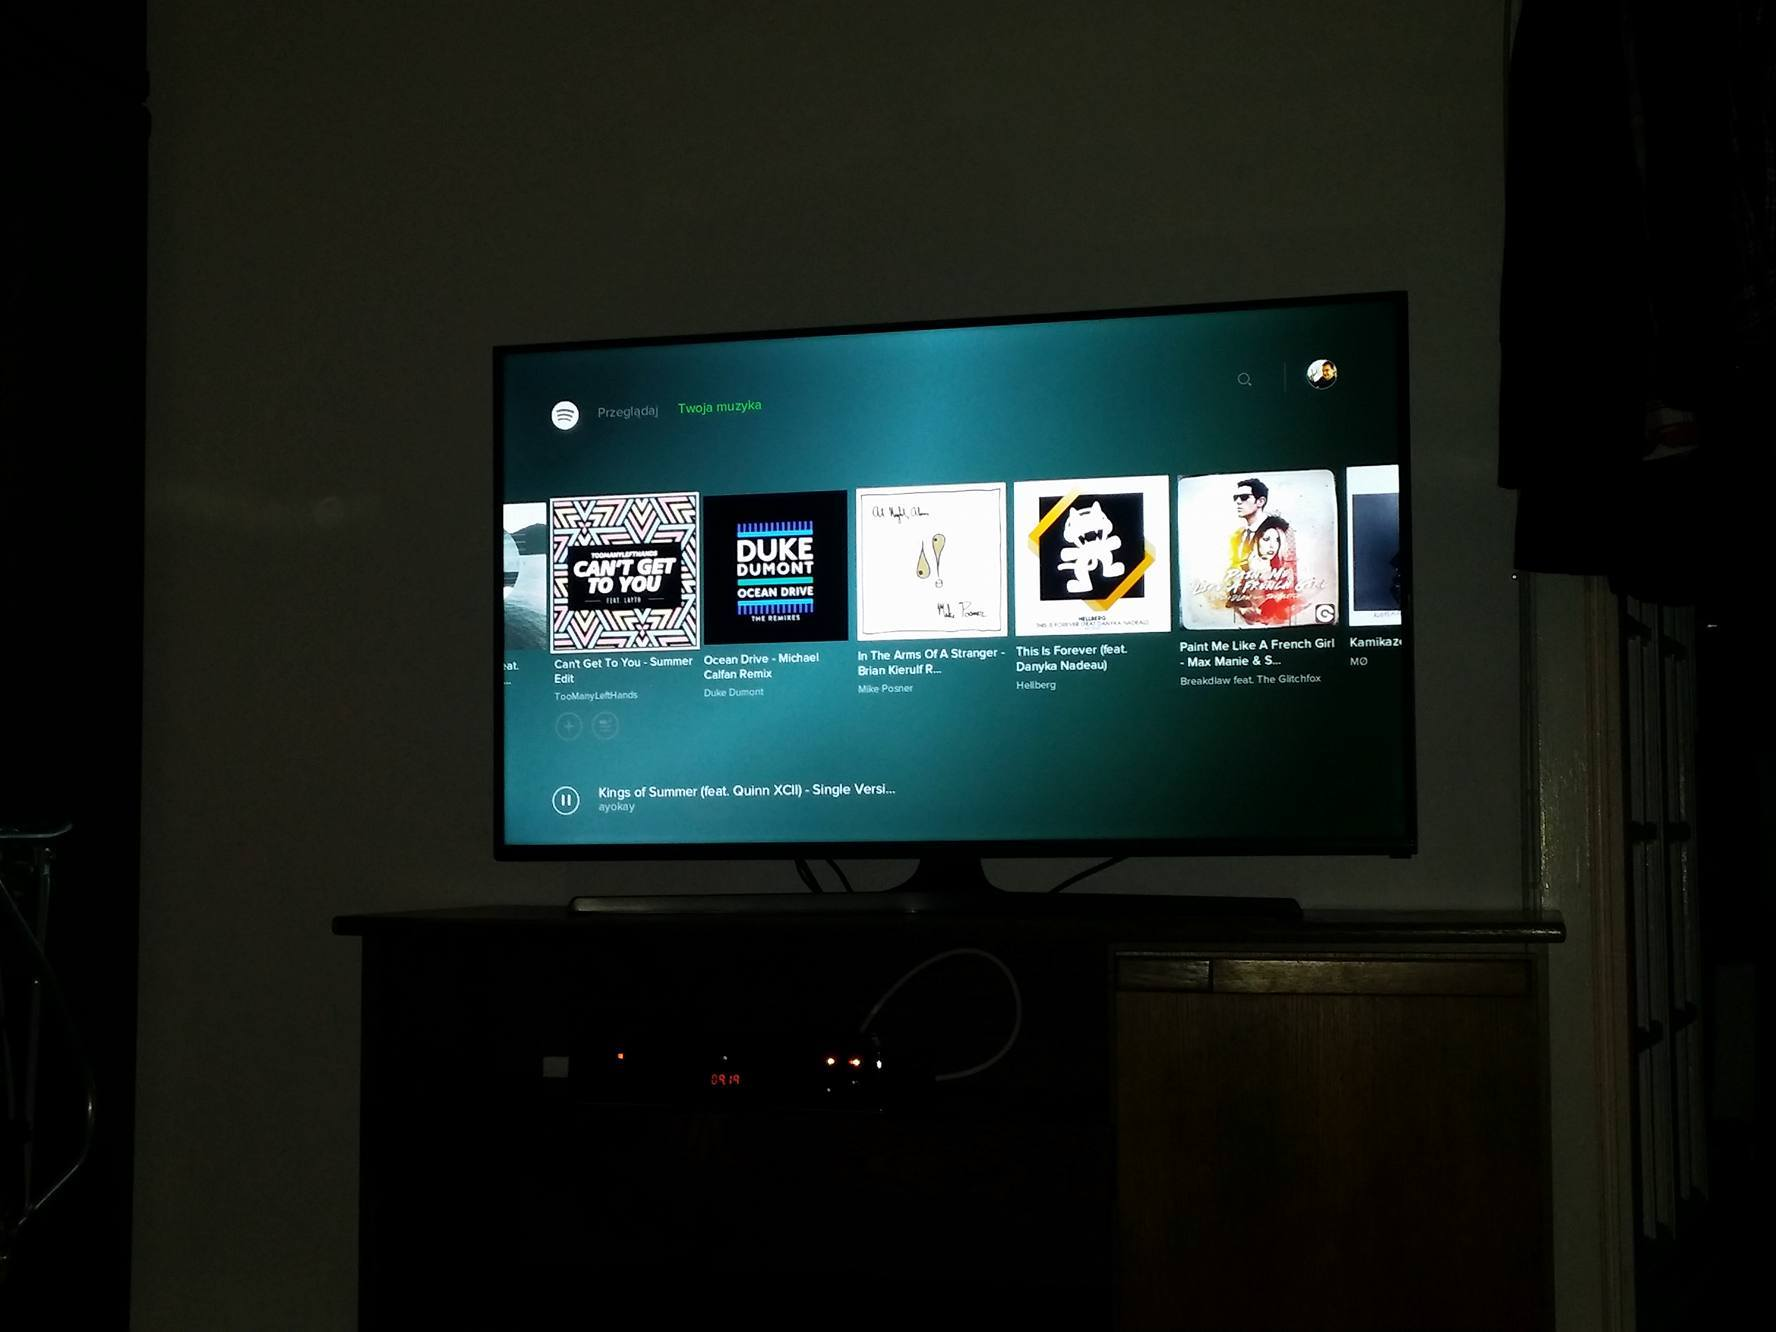 Samsung] Spotify for Samsung TV - Tizen OS - The Spotify Community